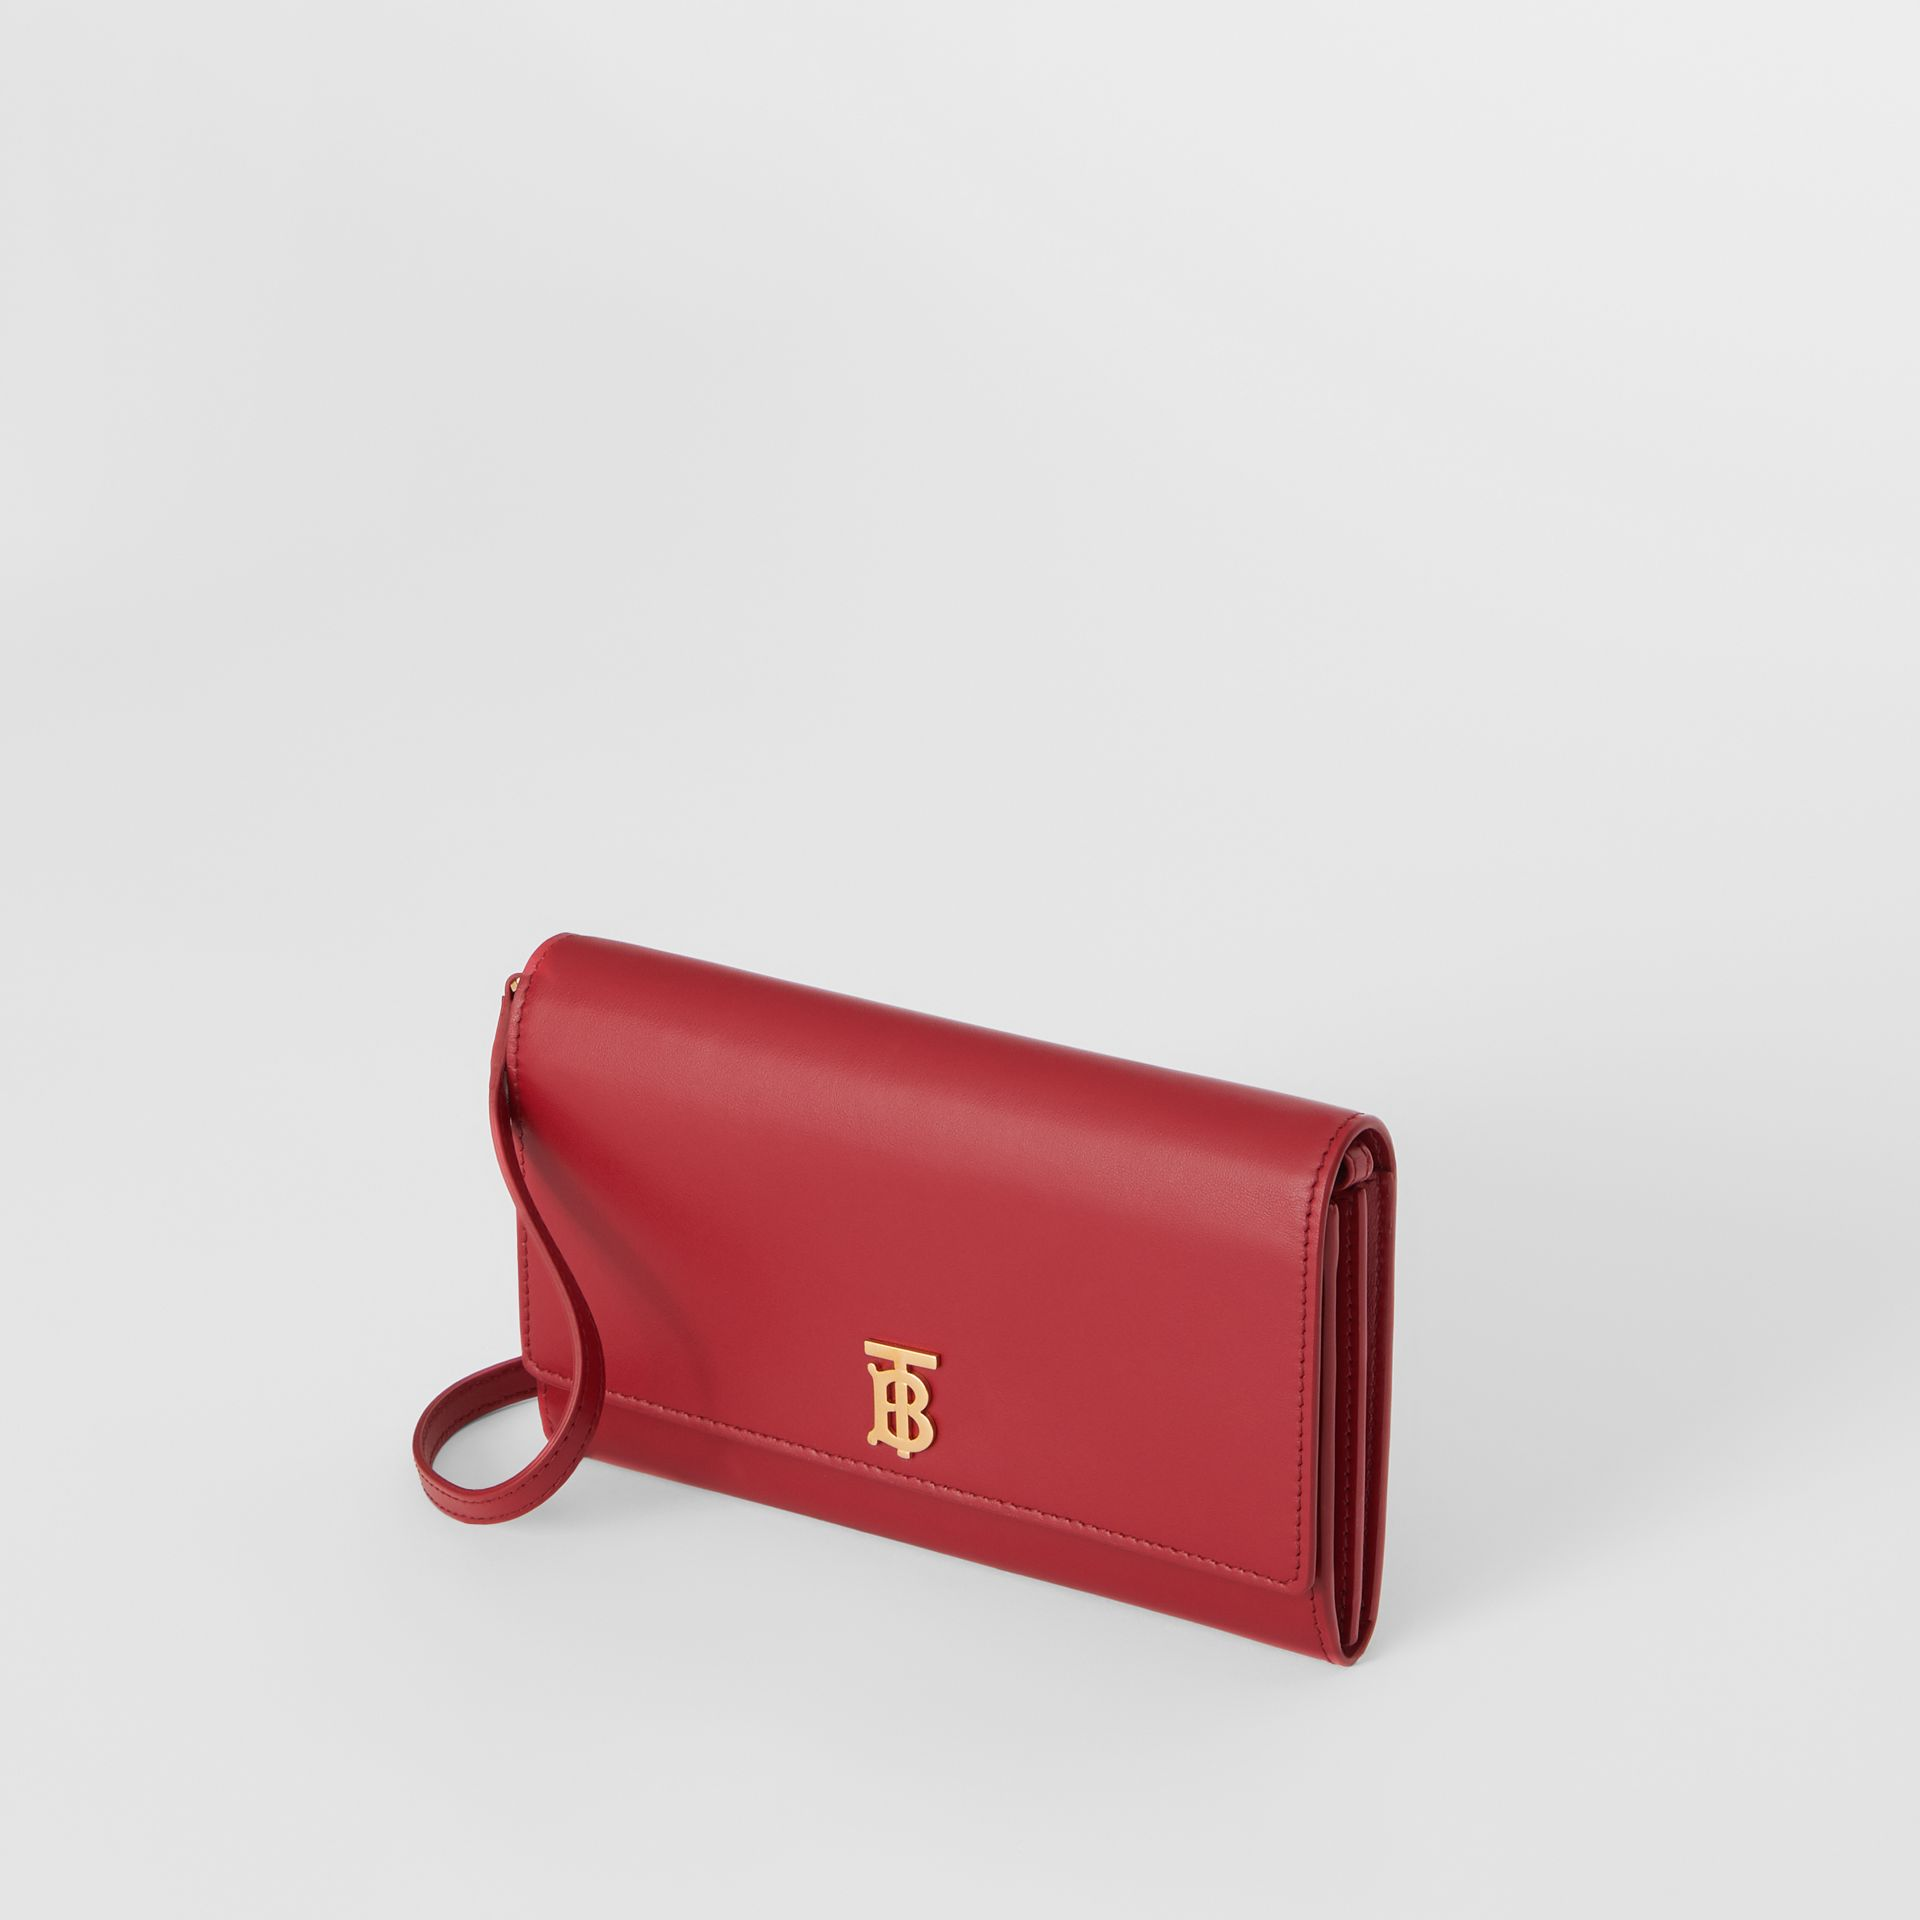 Monogram Motif Leather Wallet with Detachable Strap in Crimson - Women | Burberry United States - gallery image 3